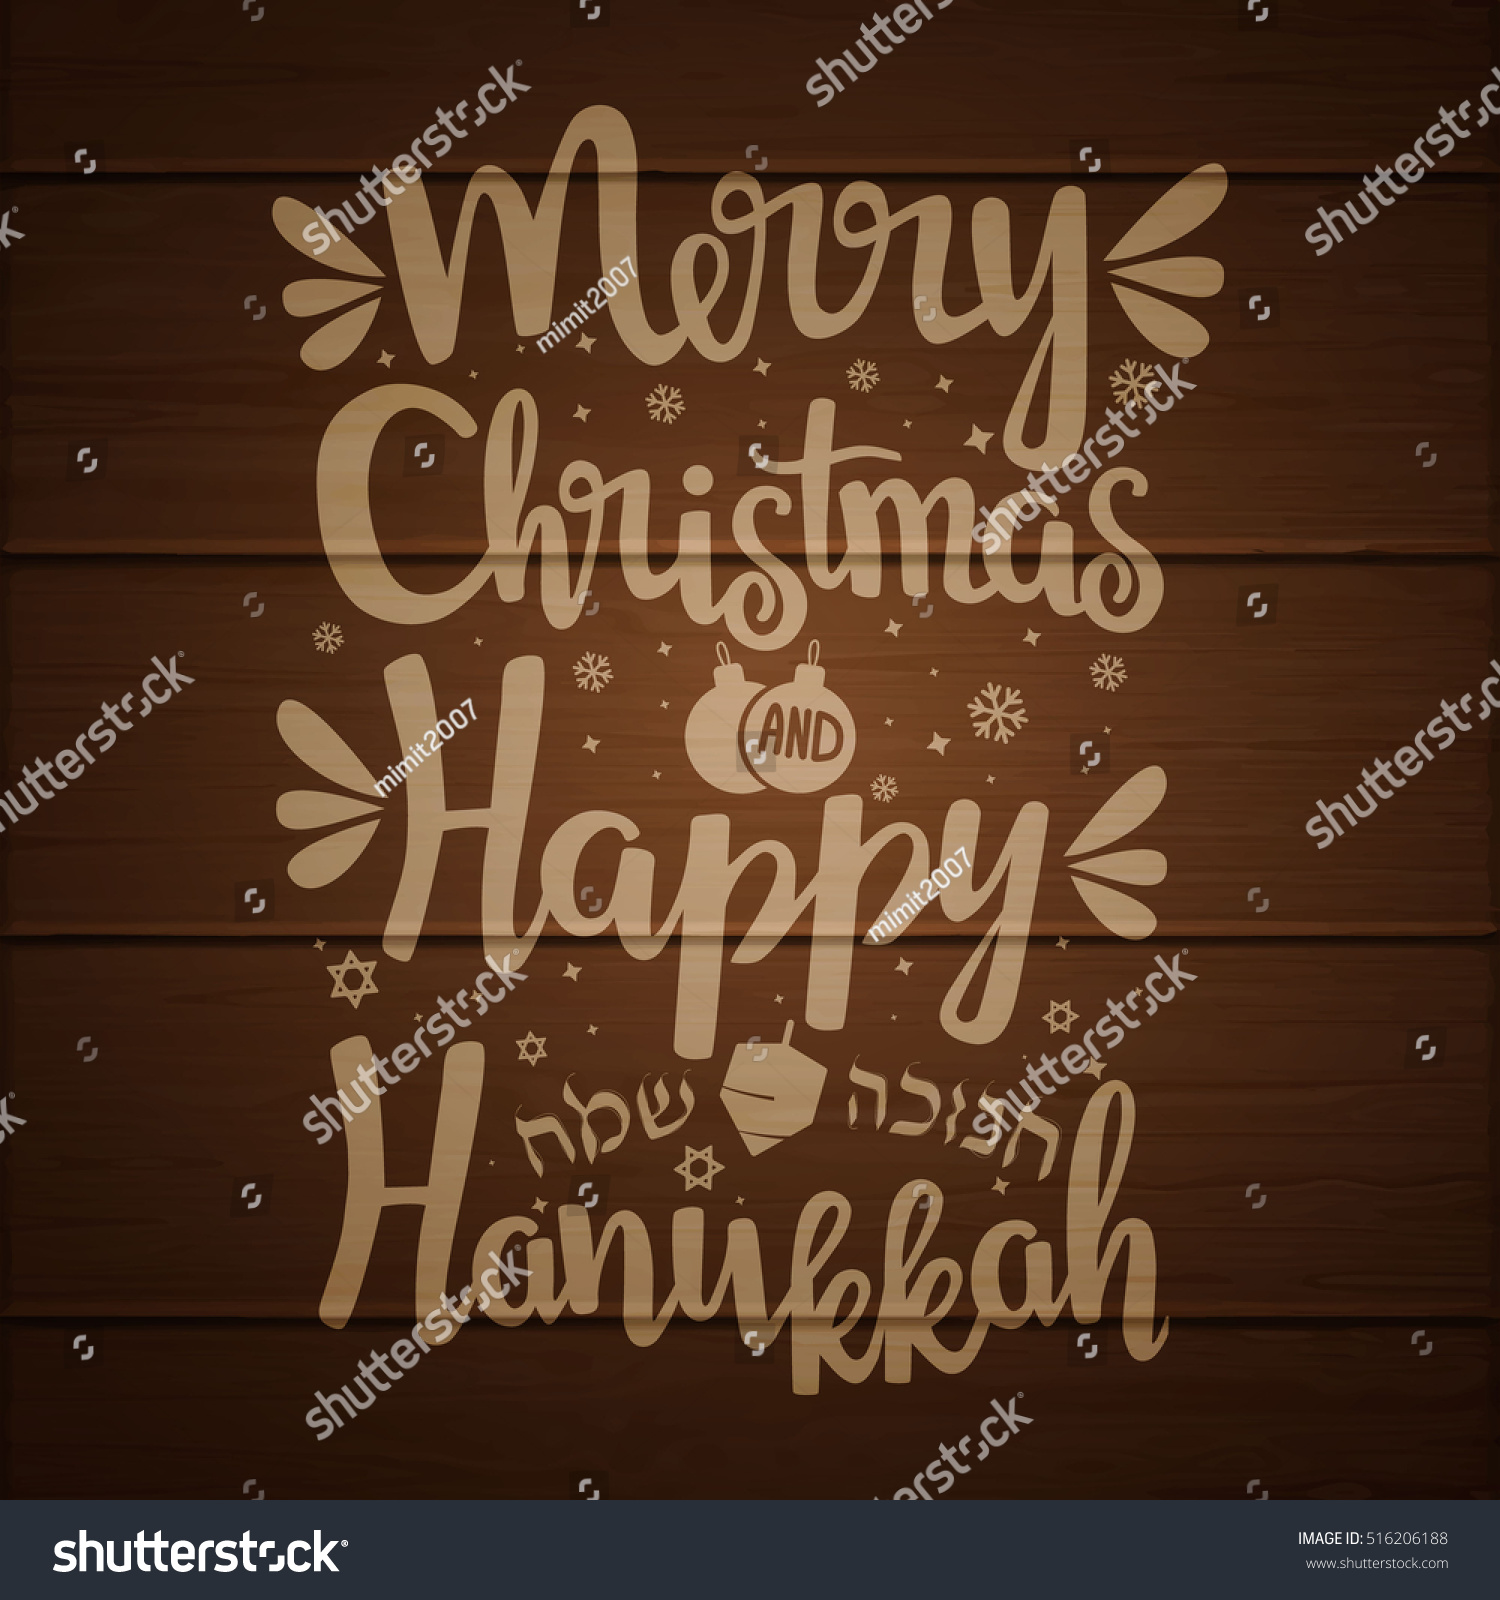 hand written lettering with text happy hanukkah and merry christmas on wooden background